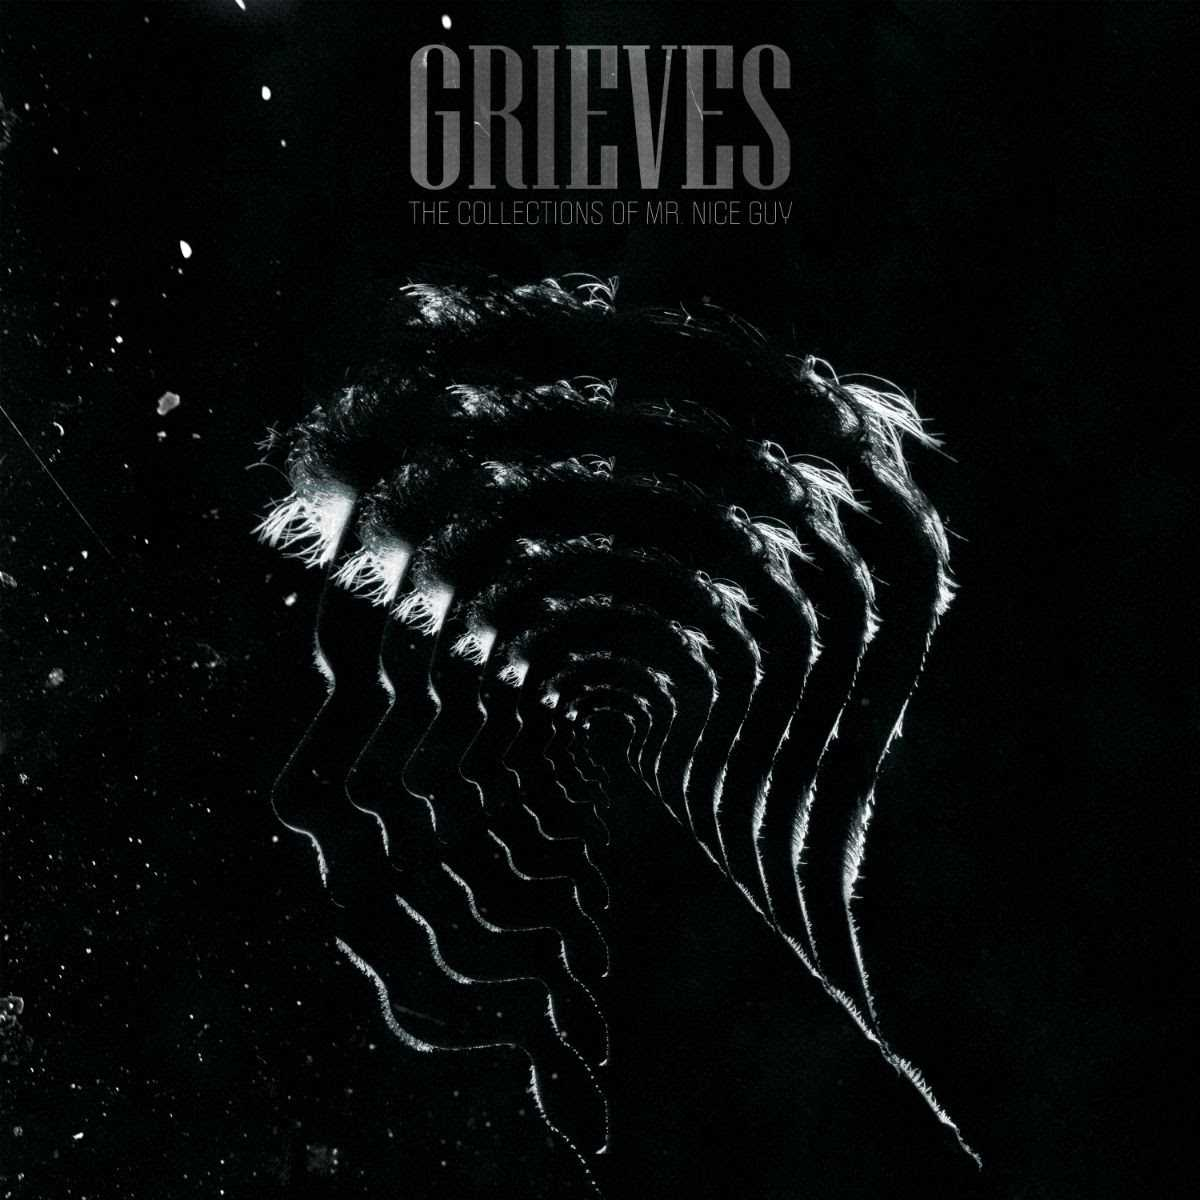 Grieves Drops Surprise Project: The Collections of Mr. Nice Guy [Audio]